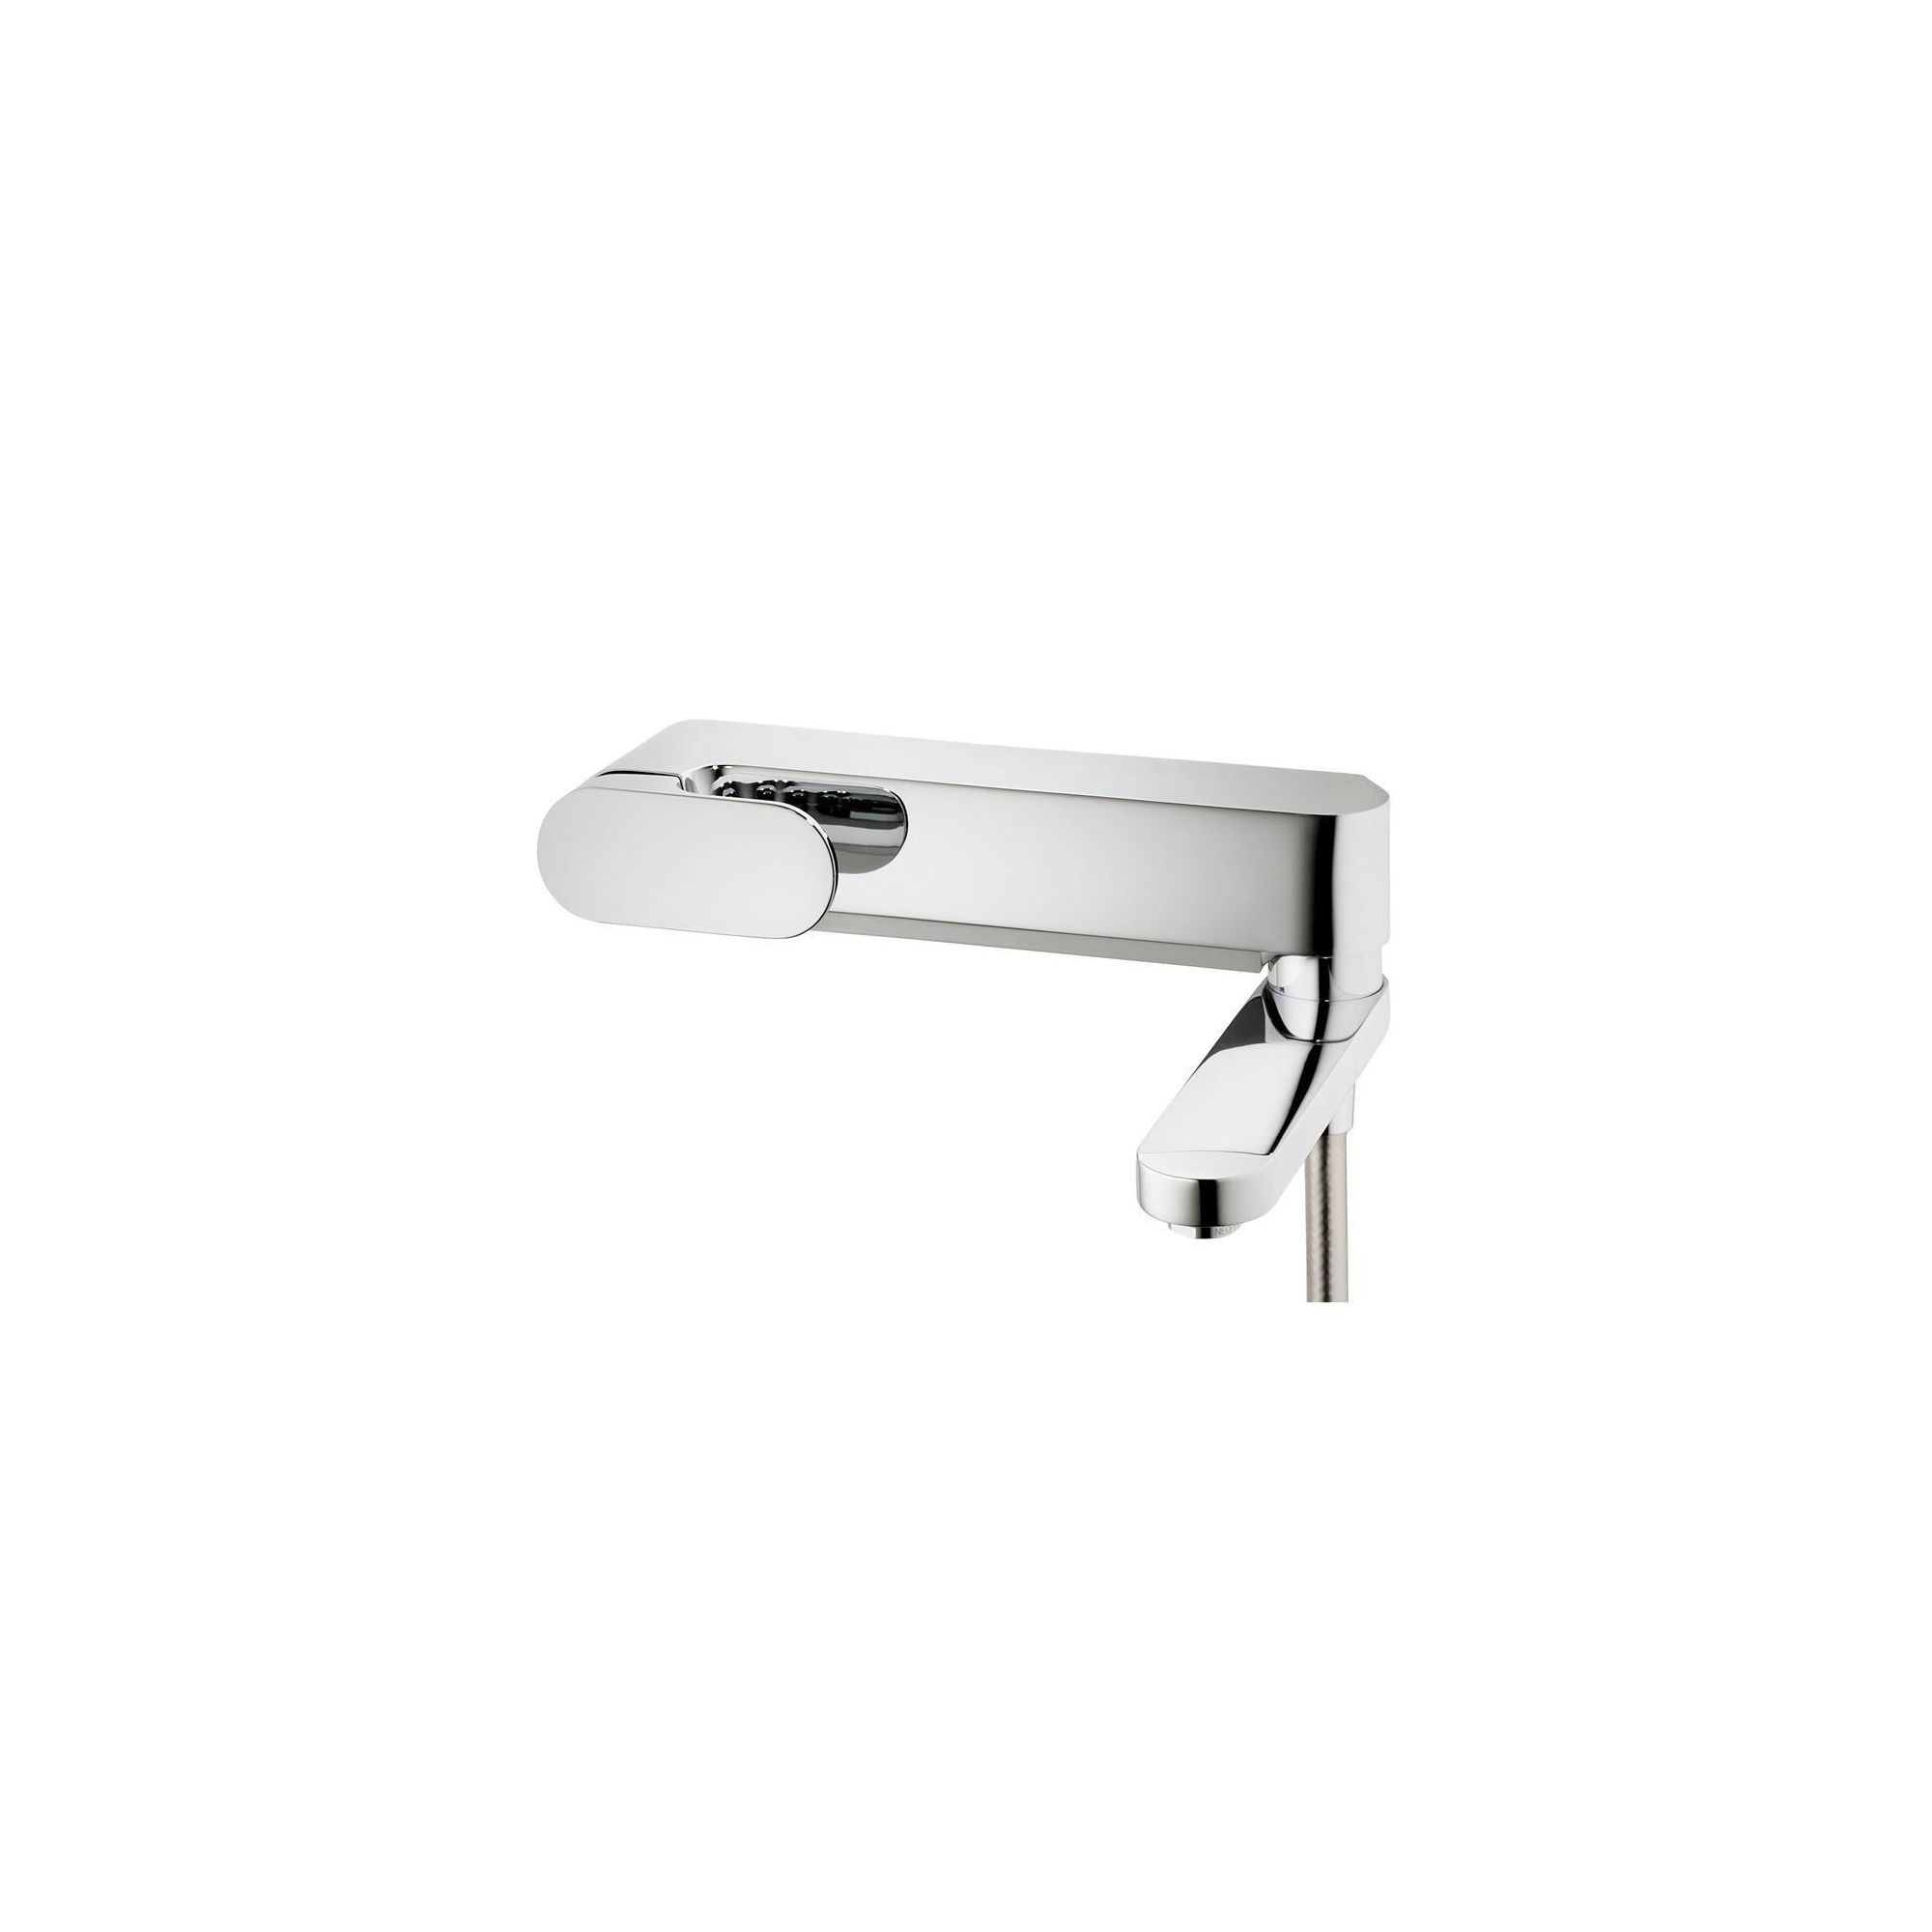 Ideal Standard Moments Exposed Wall-Mounted Bath Shower Mixer Tap Chrome at Tesco Direct